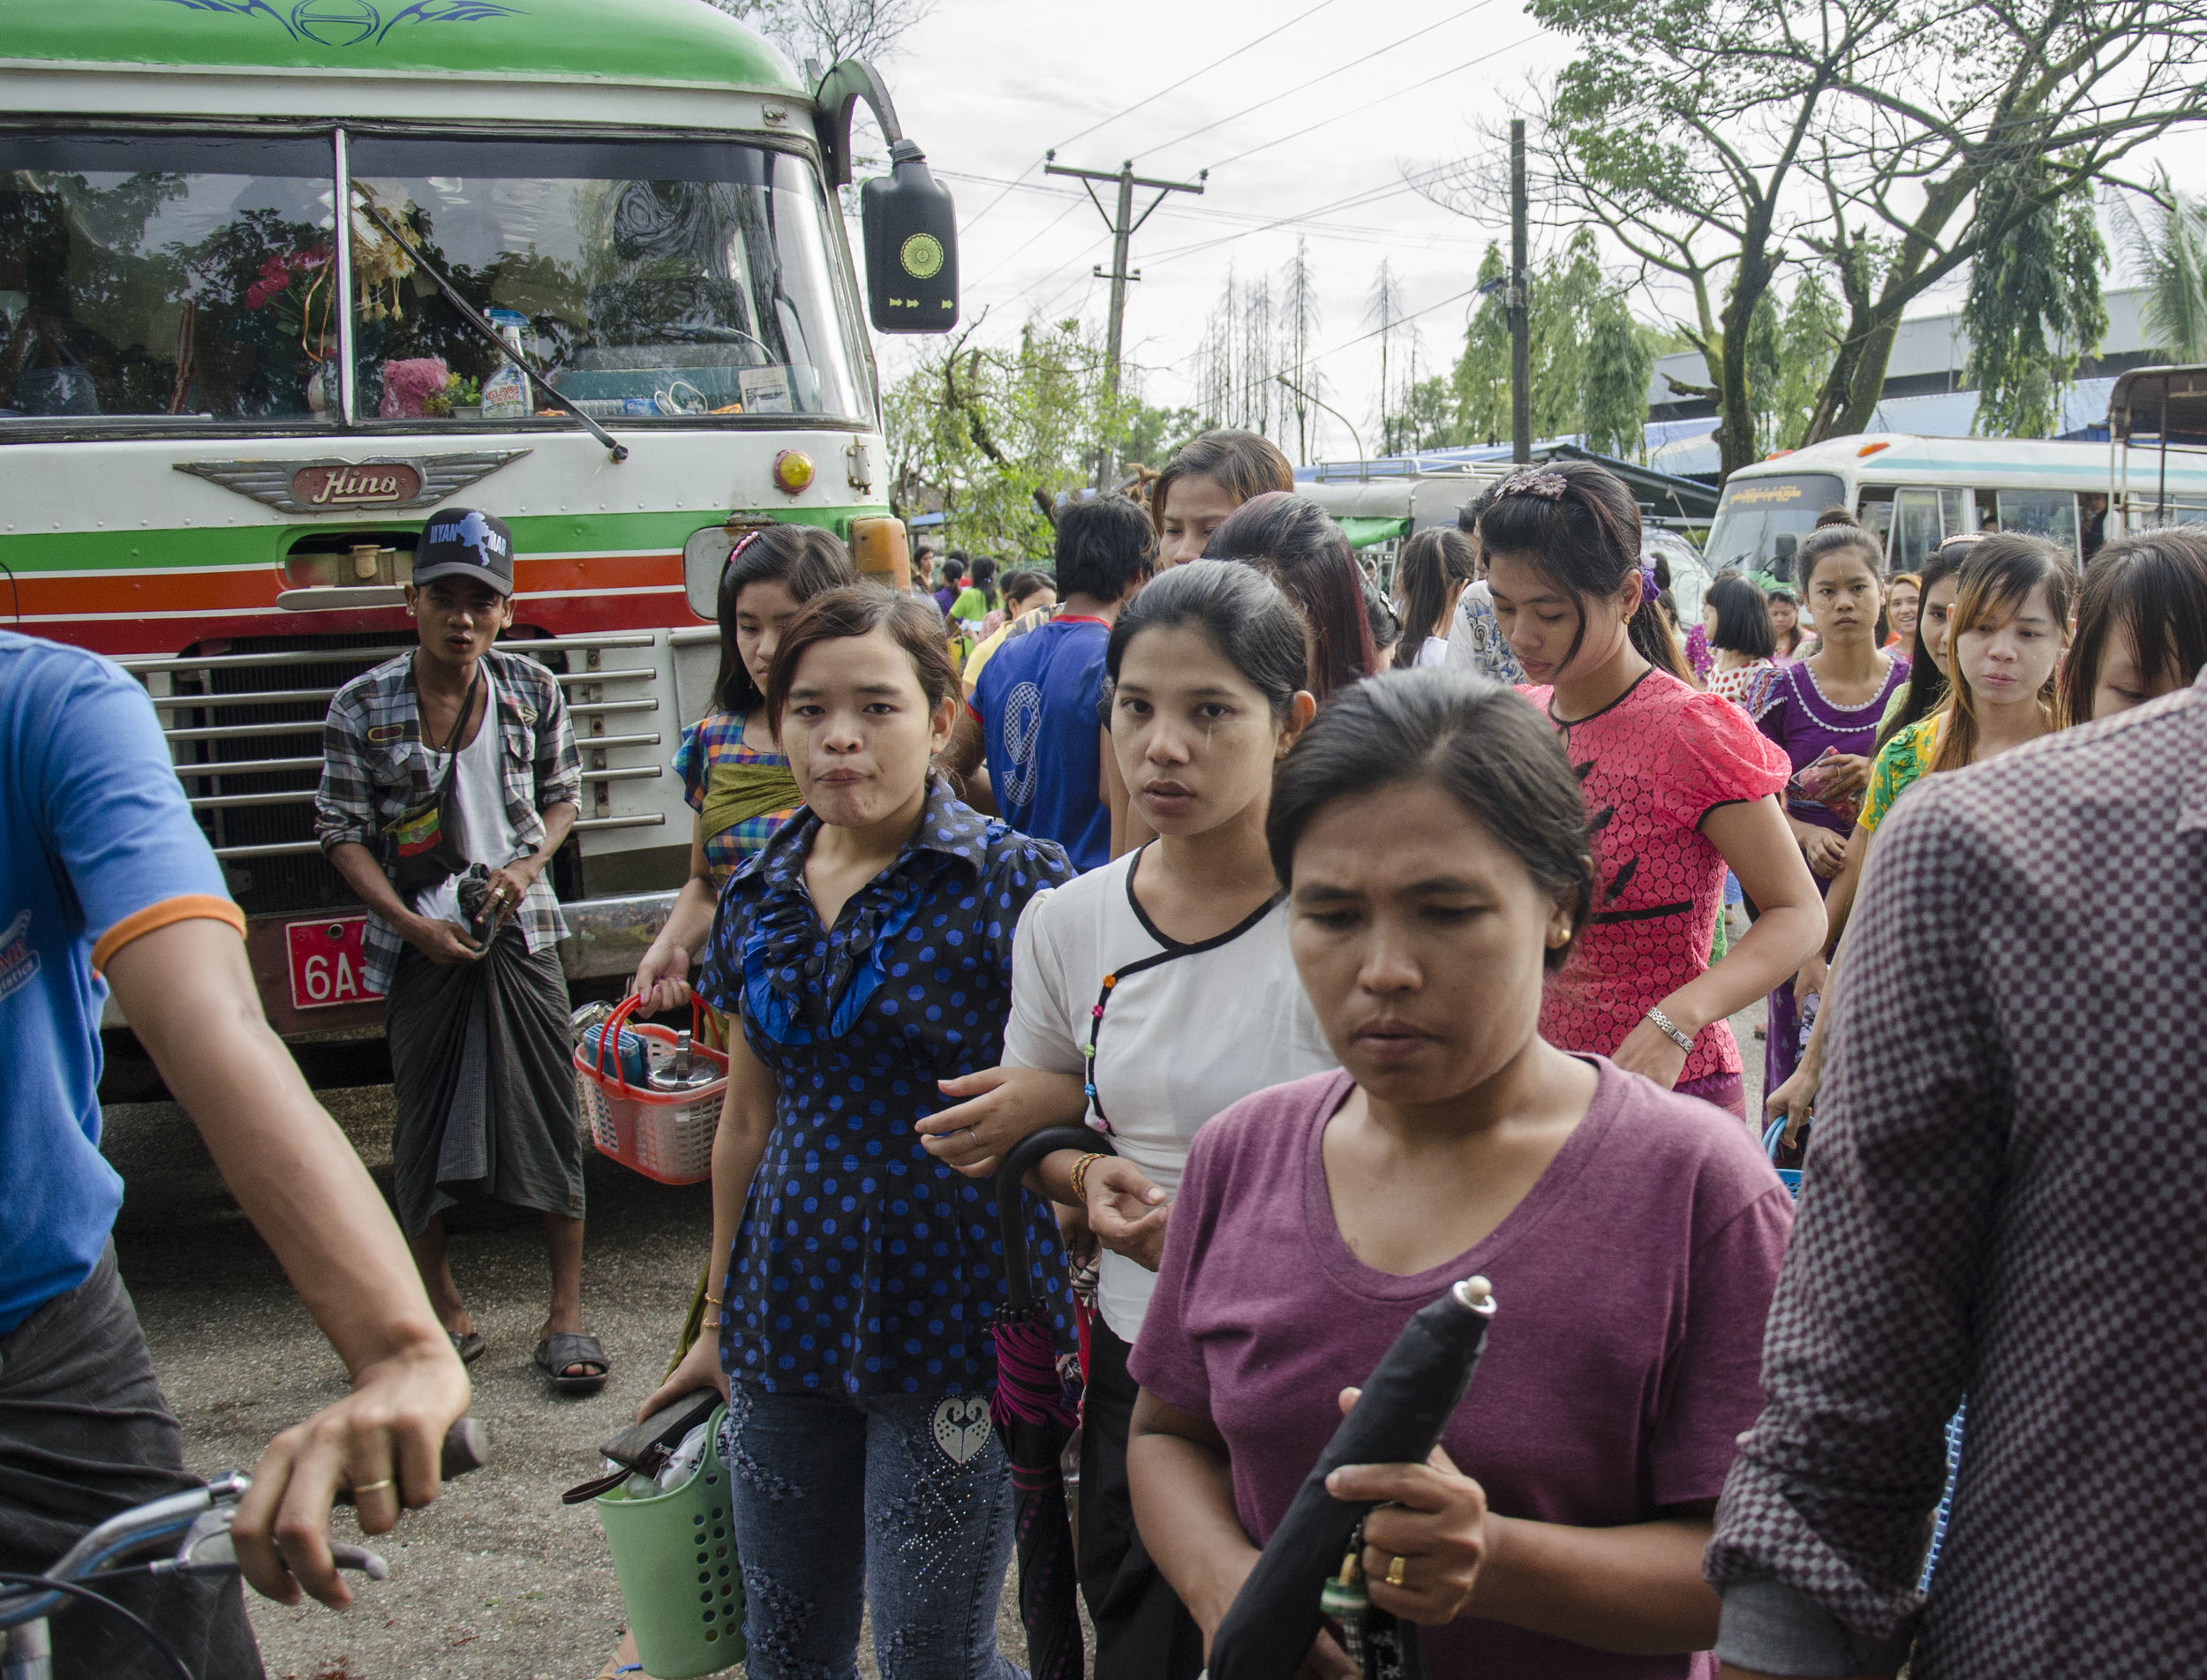 (YANGON) Outside an overtime shift at the York Garment Factory in Hlaing Thar Yar Township. With over 20,000 workers, York Garment manufacturers products for H&M and other international retailers. [Charles Michio Turner/Frontier]